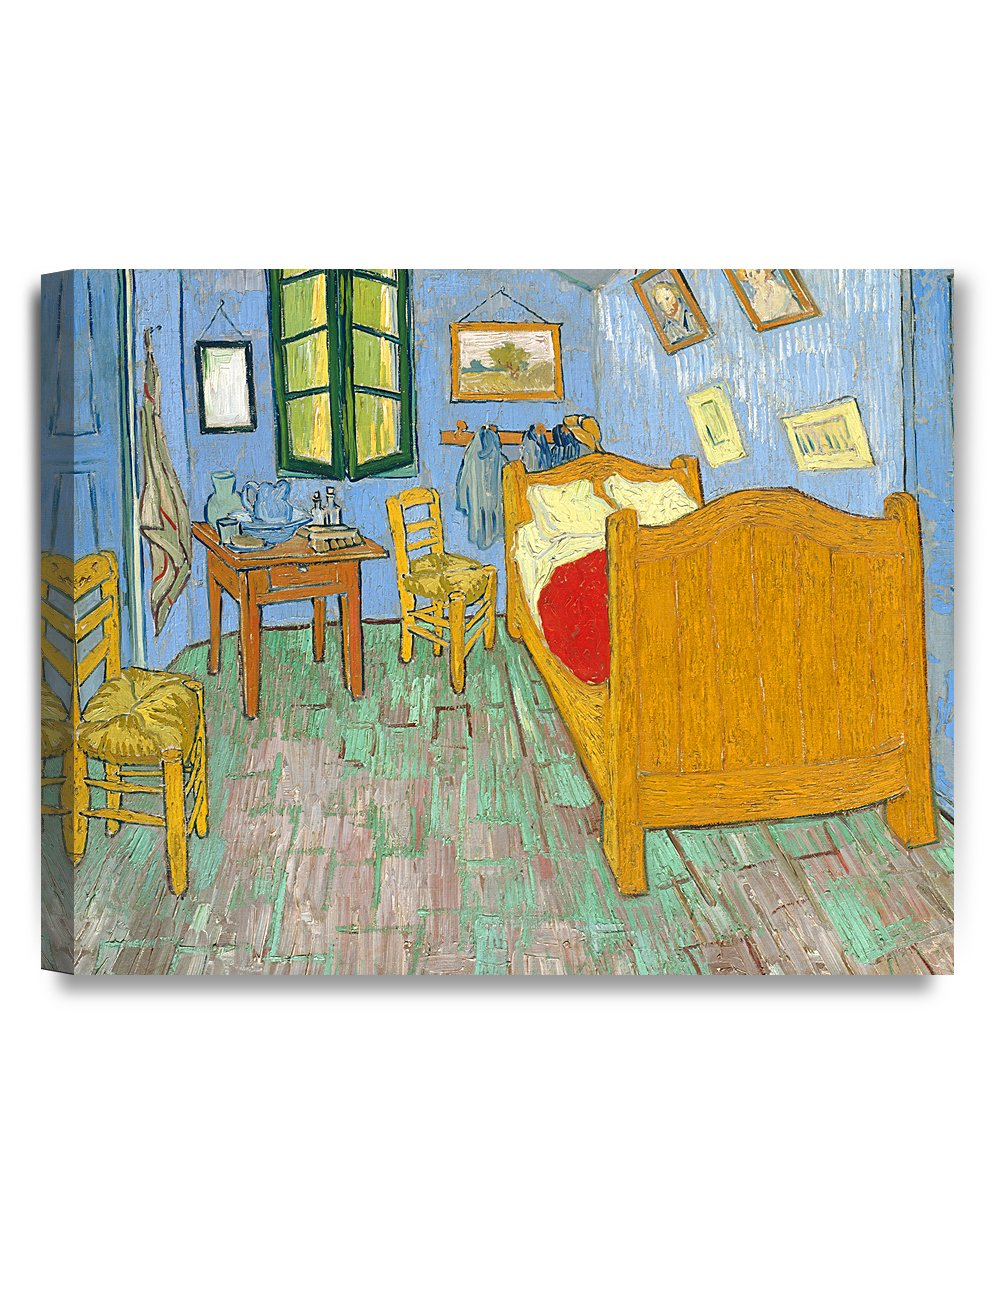 DECORARTS - Bedroom in Arles (Third Version), Vincent Van Gogh Art Reproduction. Giclee Canvas Prints Wall Art for Home Decor 20x16